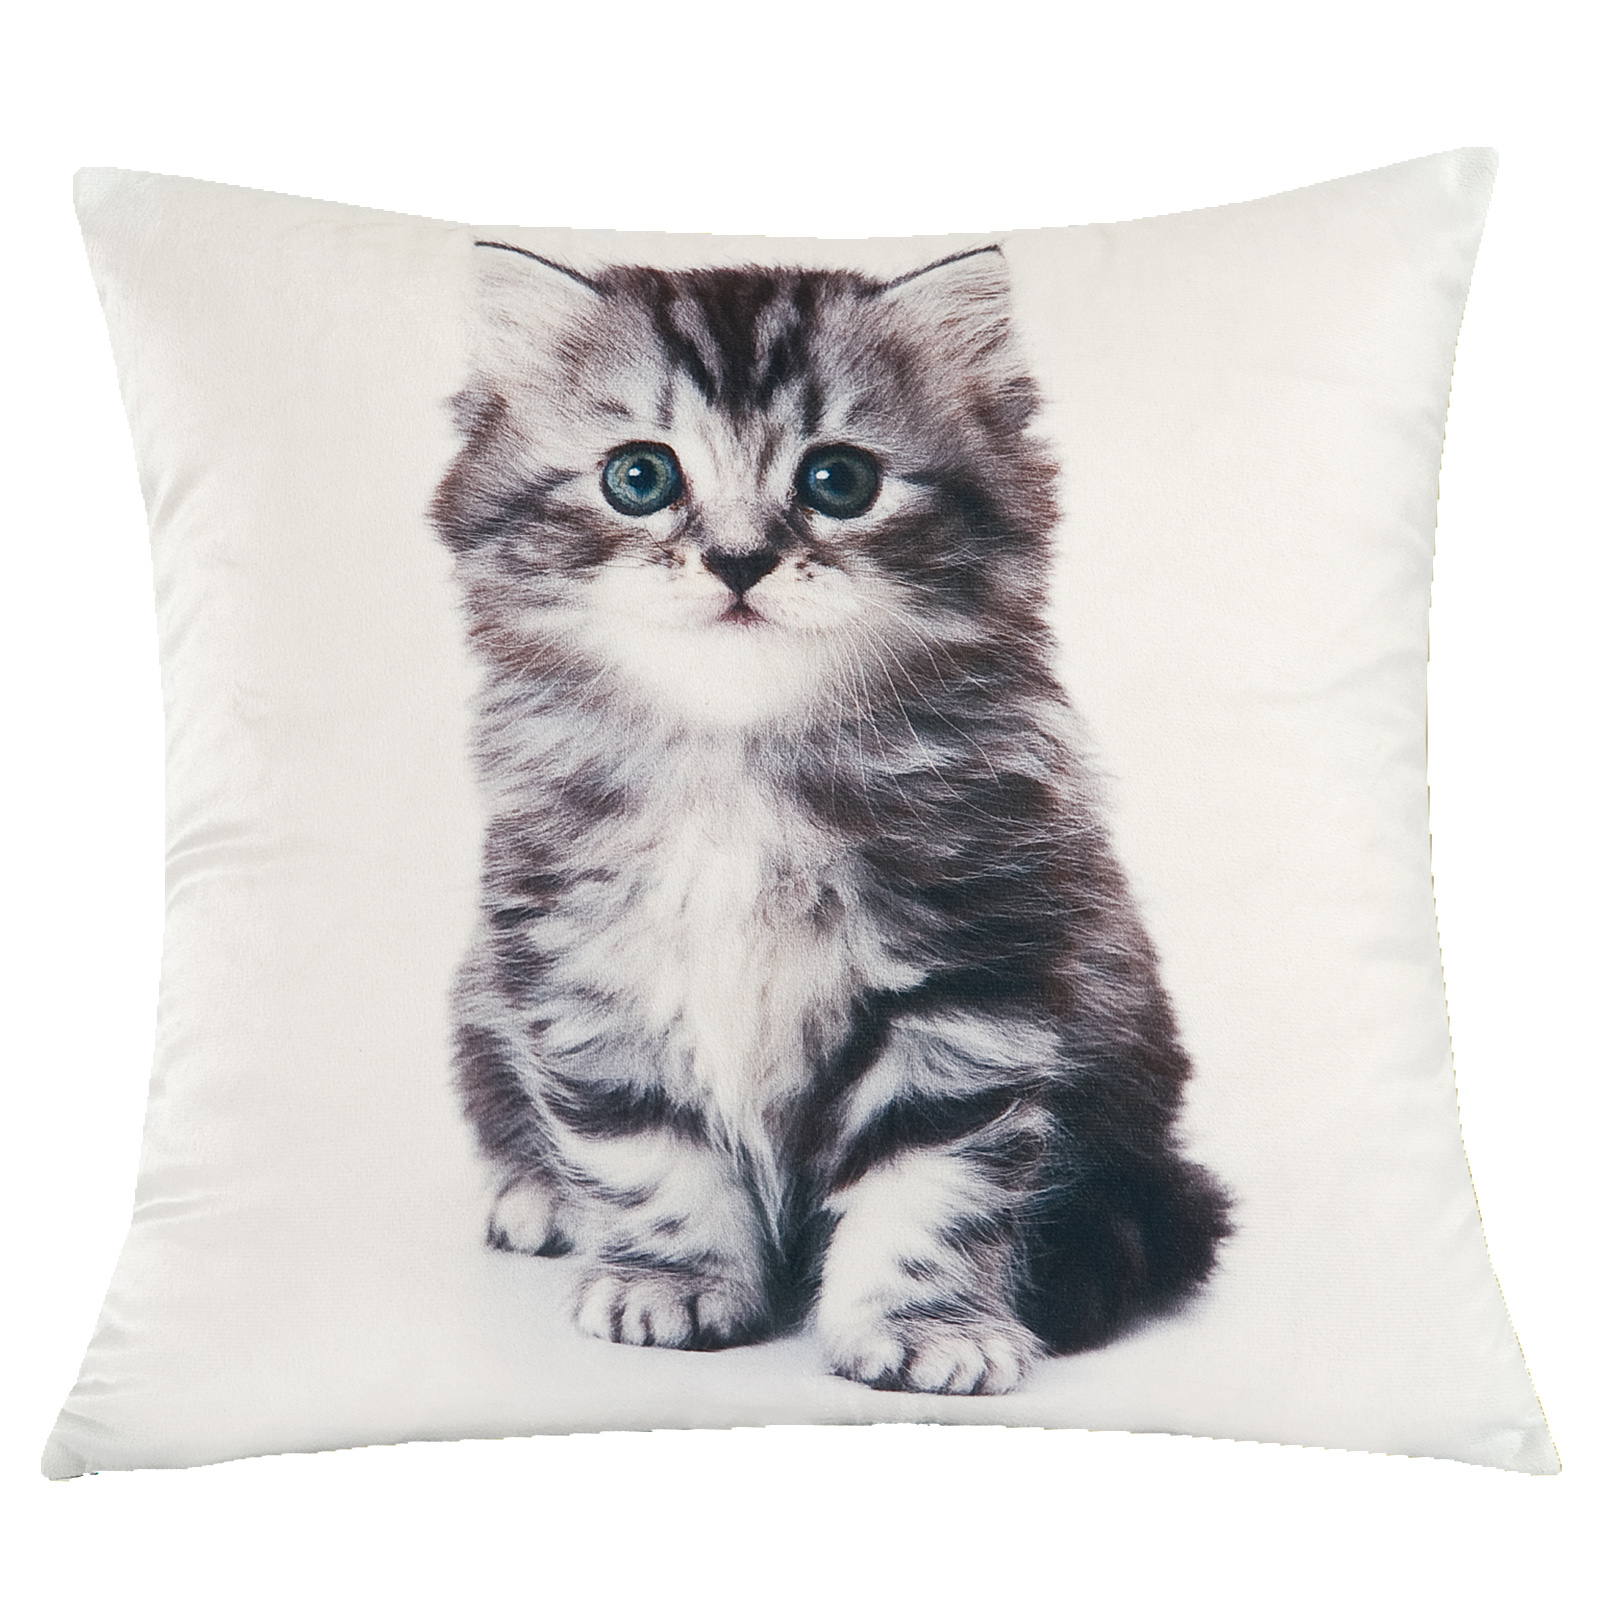 Throw Blanket And Decorative Pillow Set : Kitten Duvet Cover with Pillow Case Bedding Set Blanket Throw Cushion Cat Gift eBay